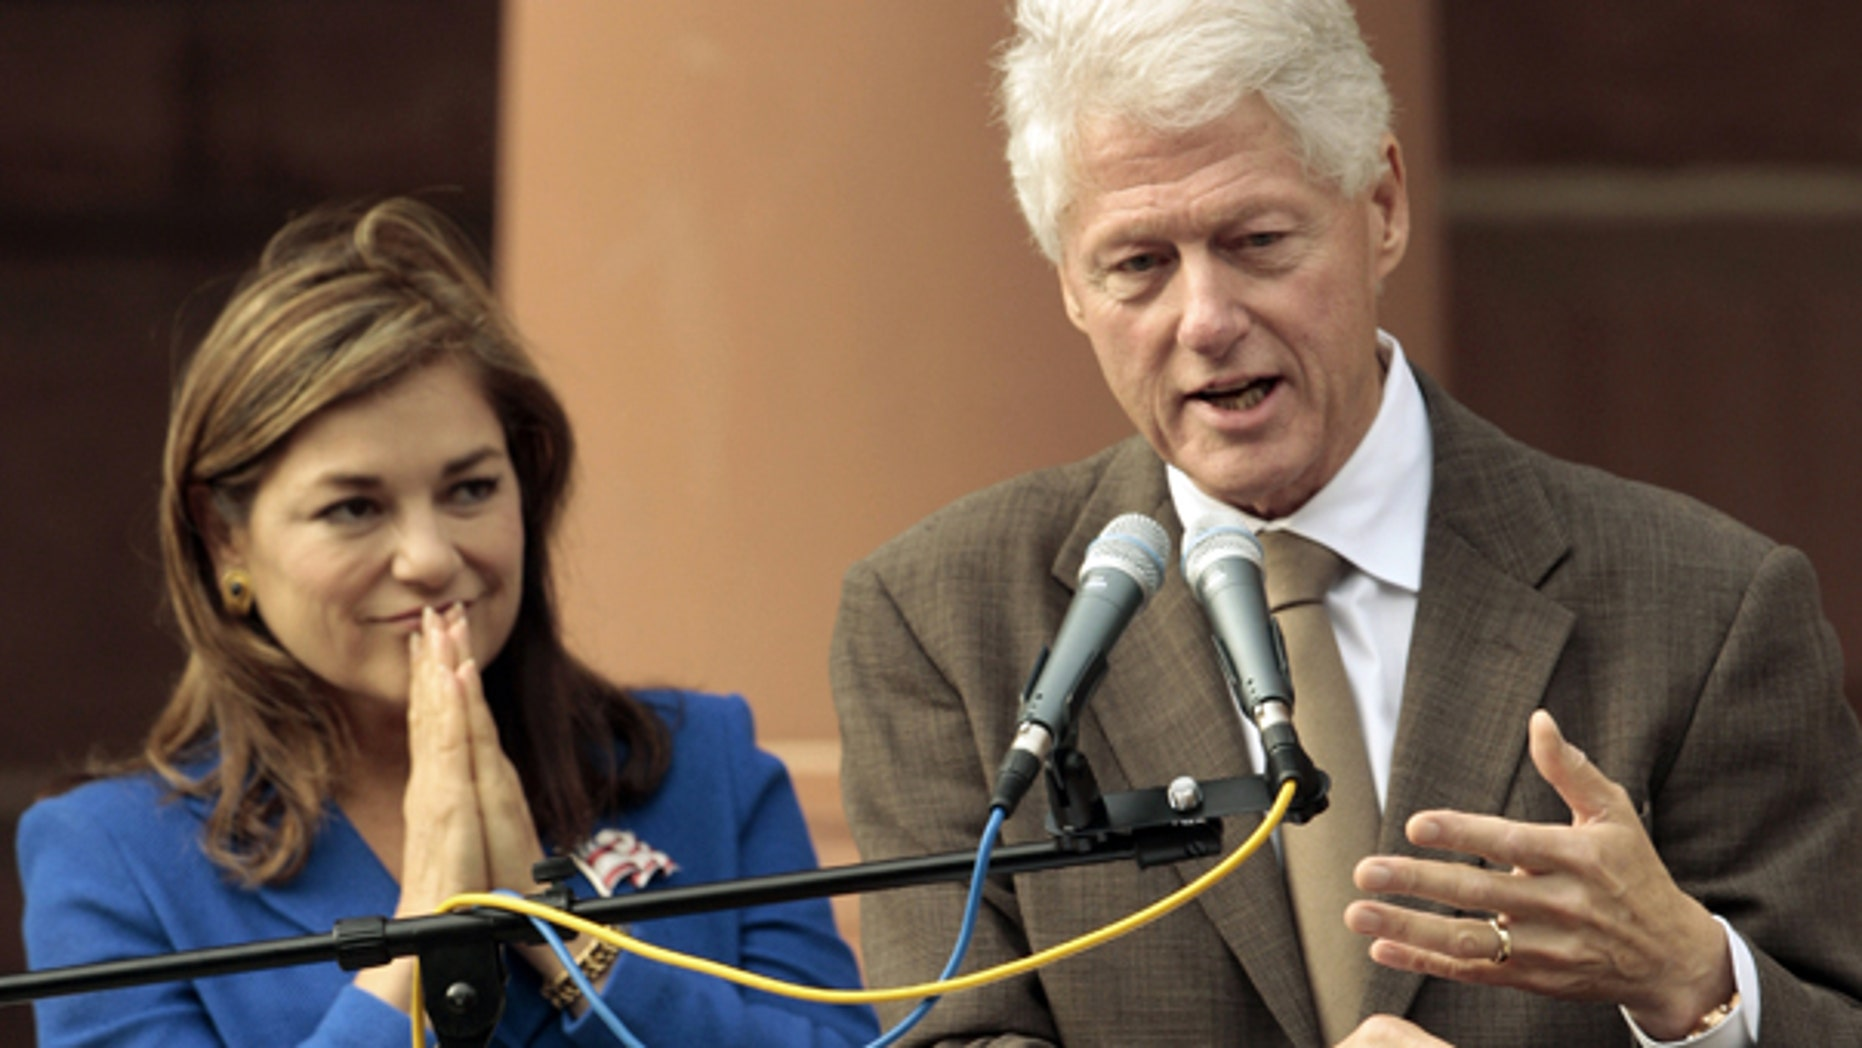 Oct. 15: Former U.S. President Bill Clinton campaigns for Rep. Loretta Sanchez, D-Calif. outside the Old Orange County Courthouse in Santa Ana, Calif.